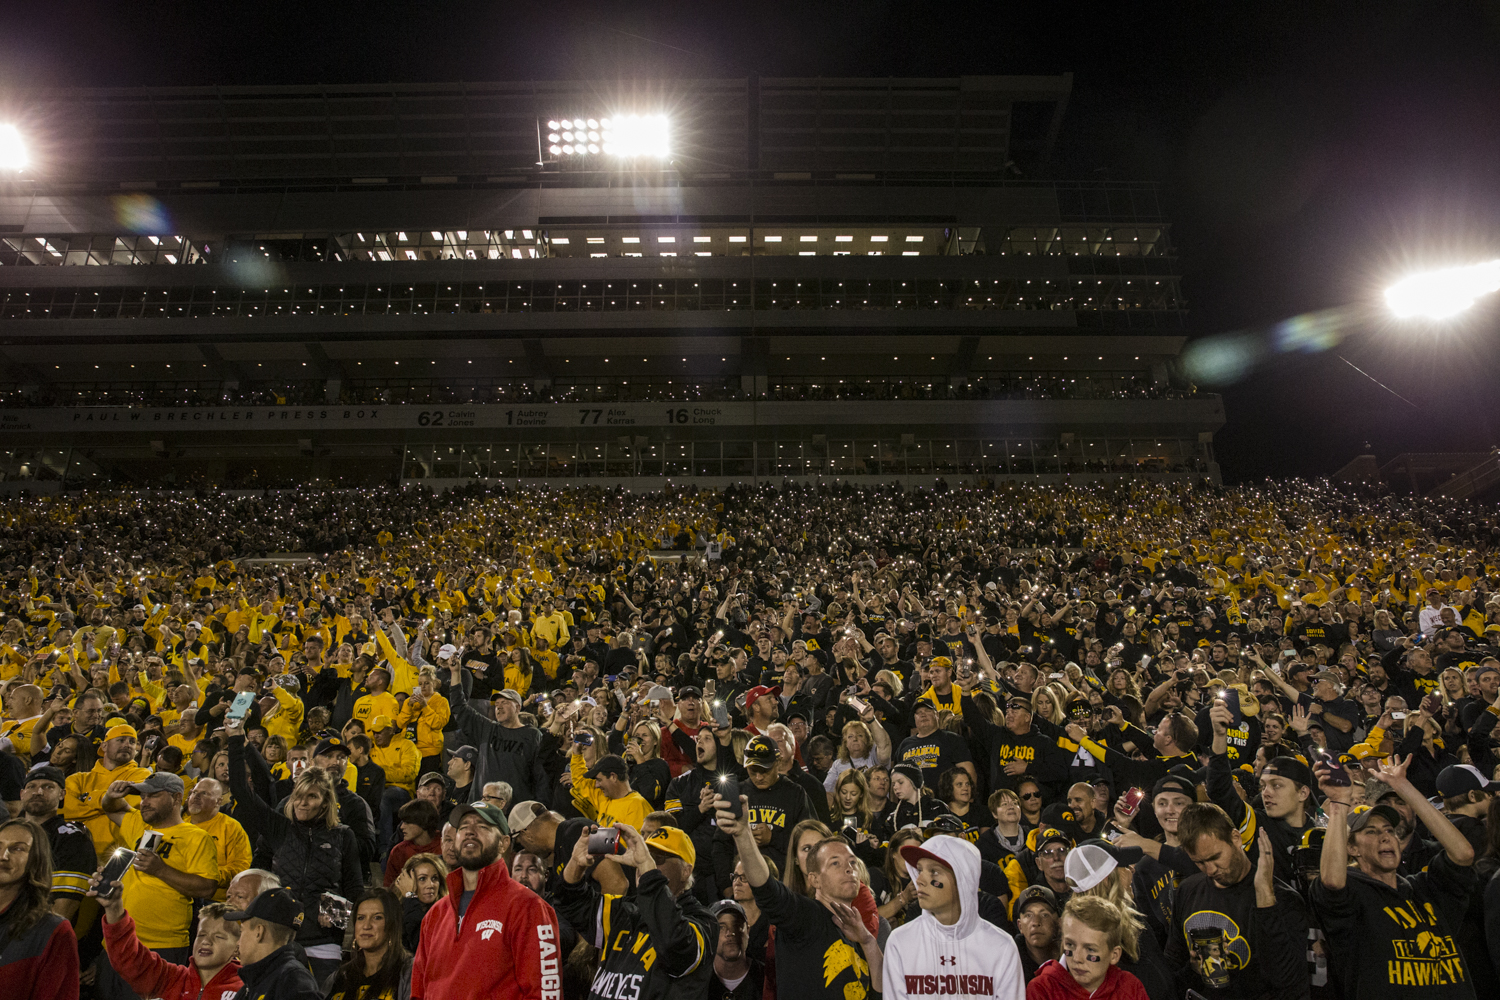 Iowa+fans+dance+to+%22Hypnotize%22+by+The+Notorious+B.I.G.+during+Iowa%27s+game+against+Wisconsin+at+Kinnick+Stadium+on+Saturday%2C+September+22%2C+2018.+The+Badgers+defeated+the+Hawkeyes+28-17.